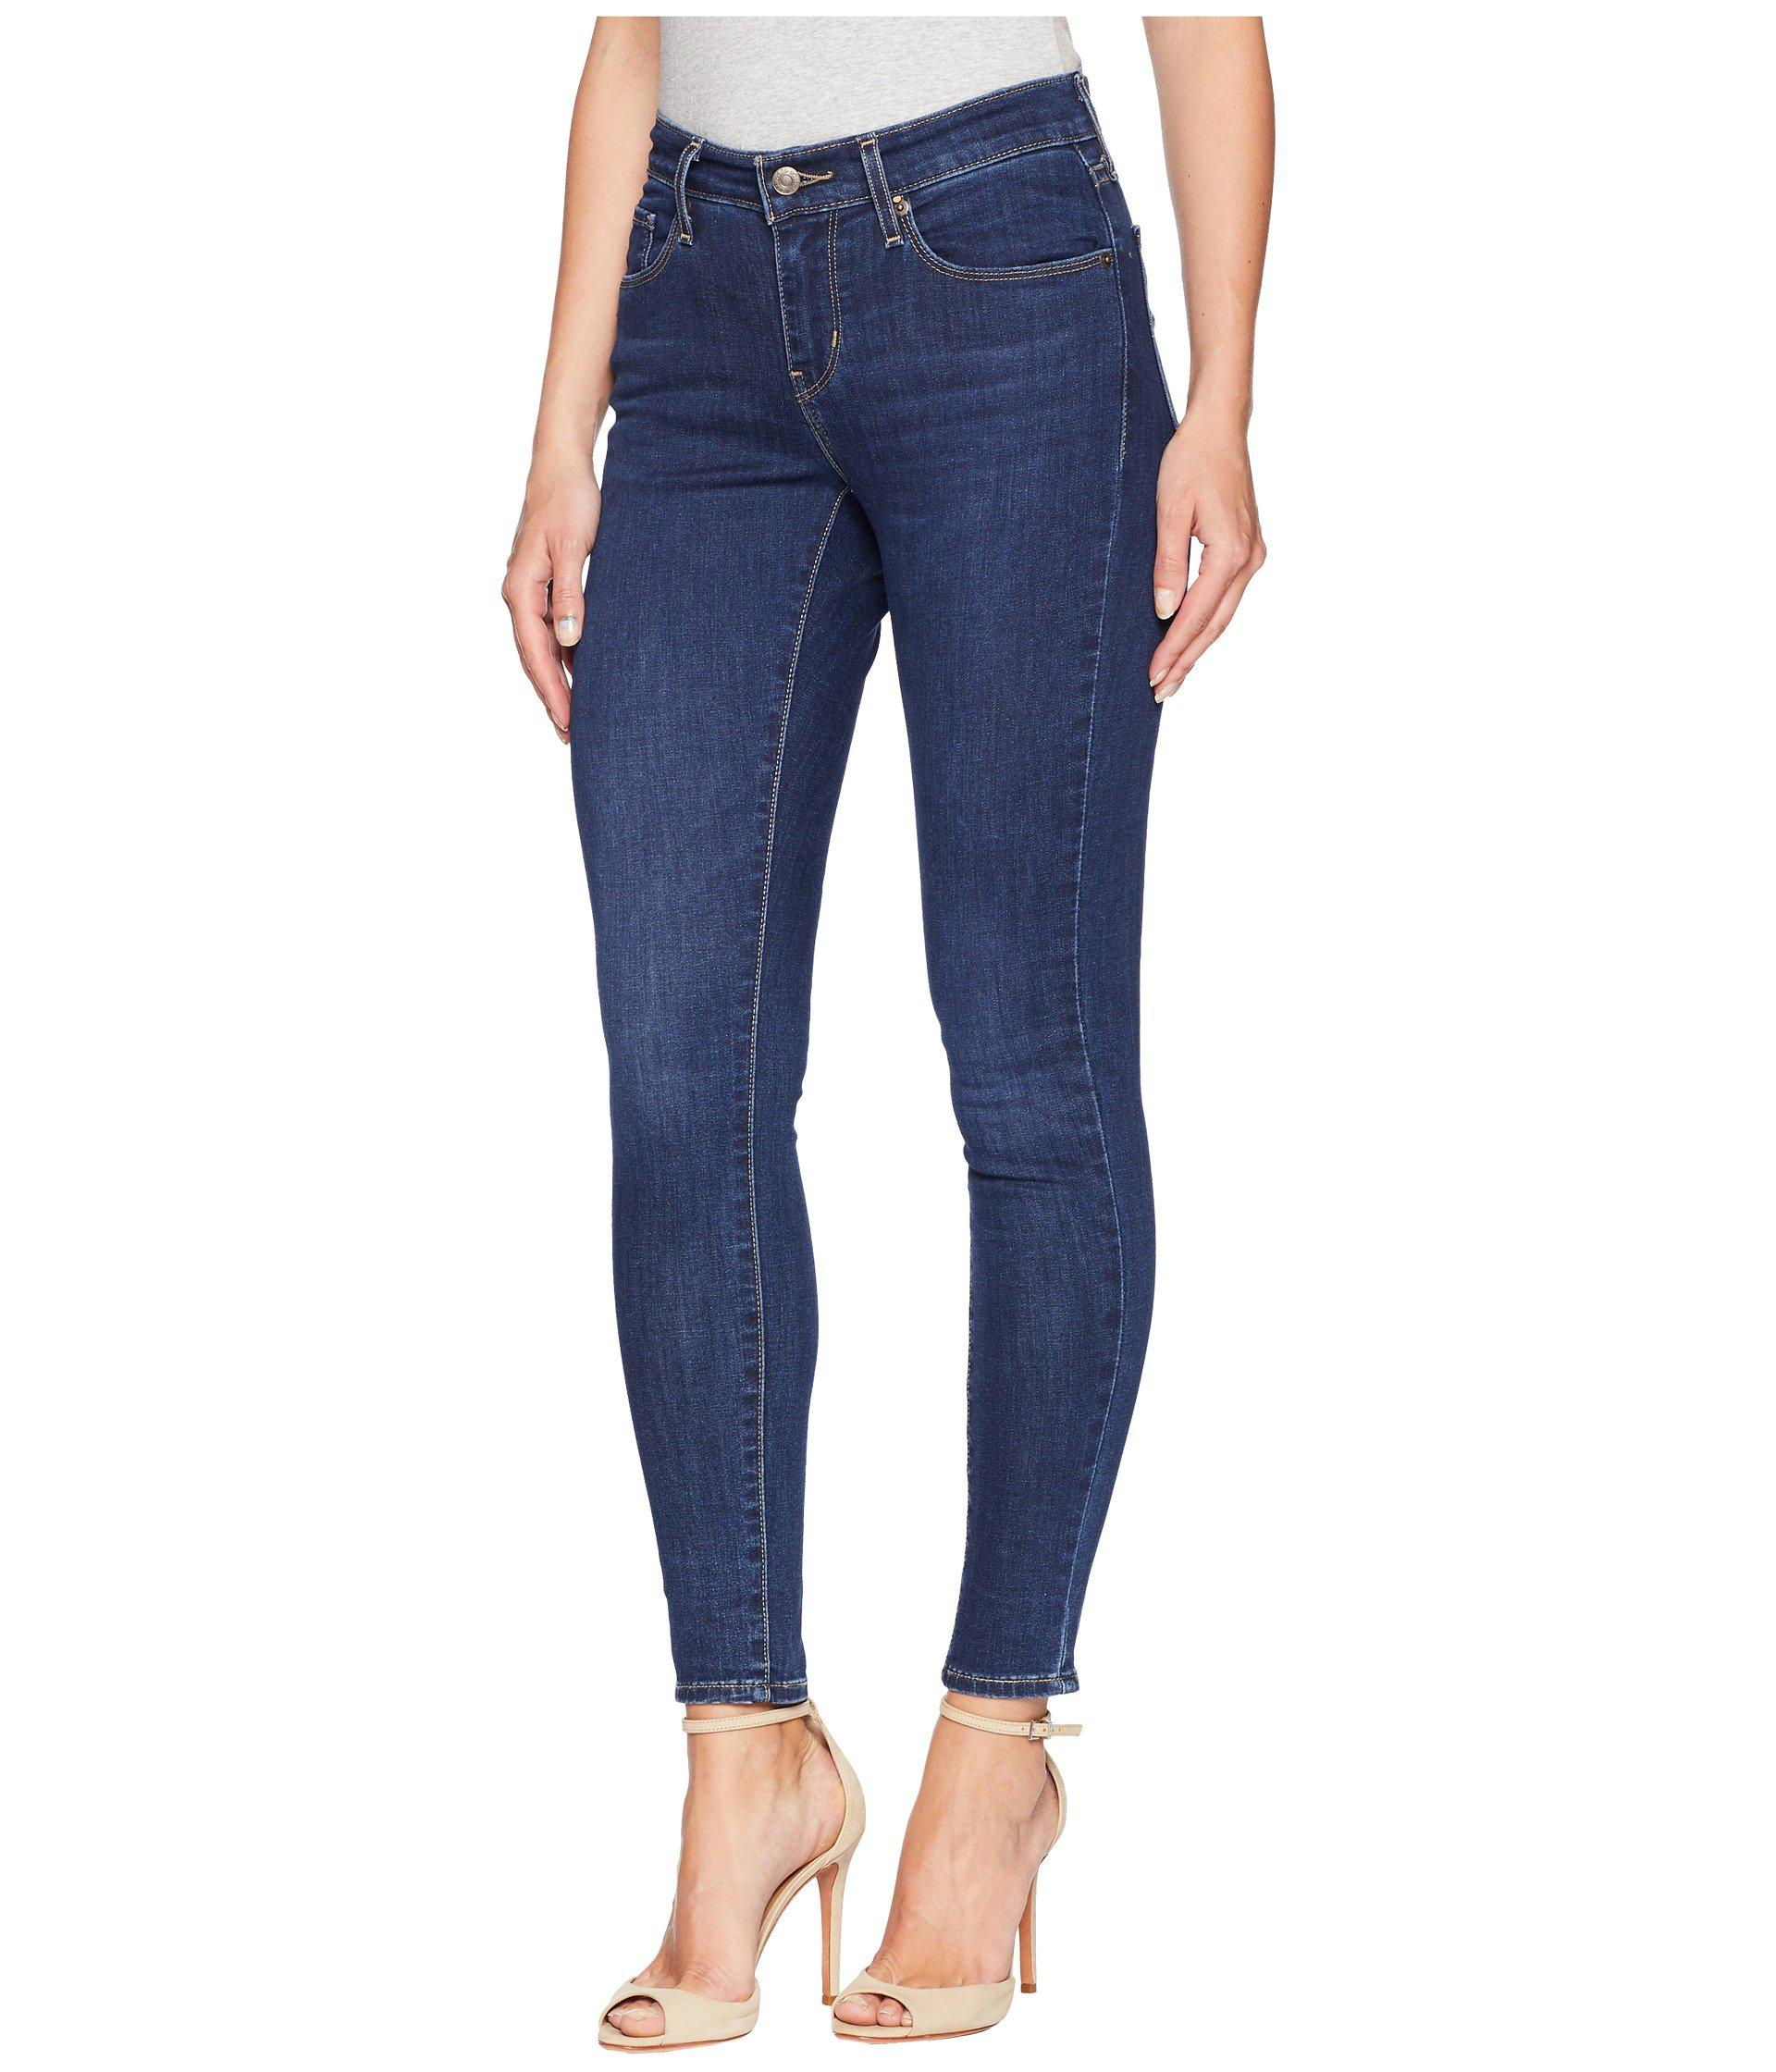 ea61292e94d Lyst - Levi's Levi's(r) Womens Curvy Skinny (blue Star Way) Women's Jeans  in Blue